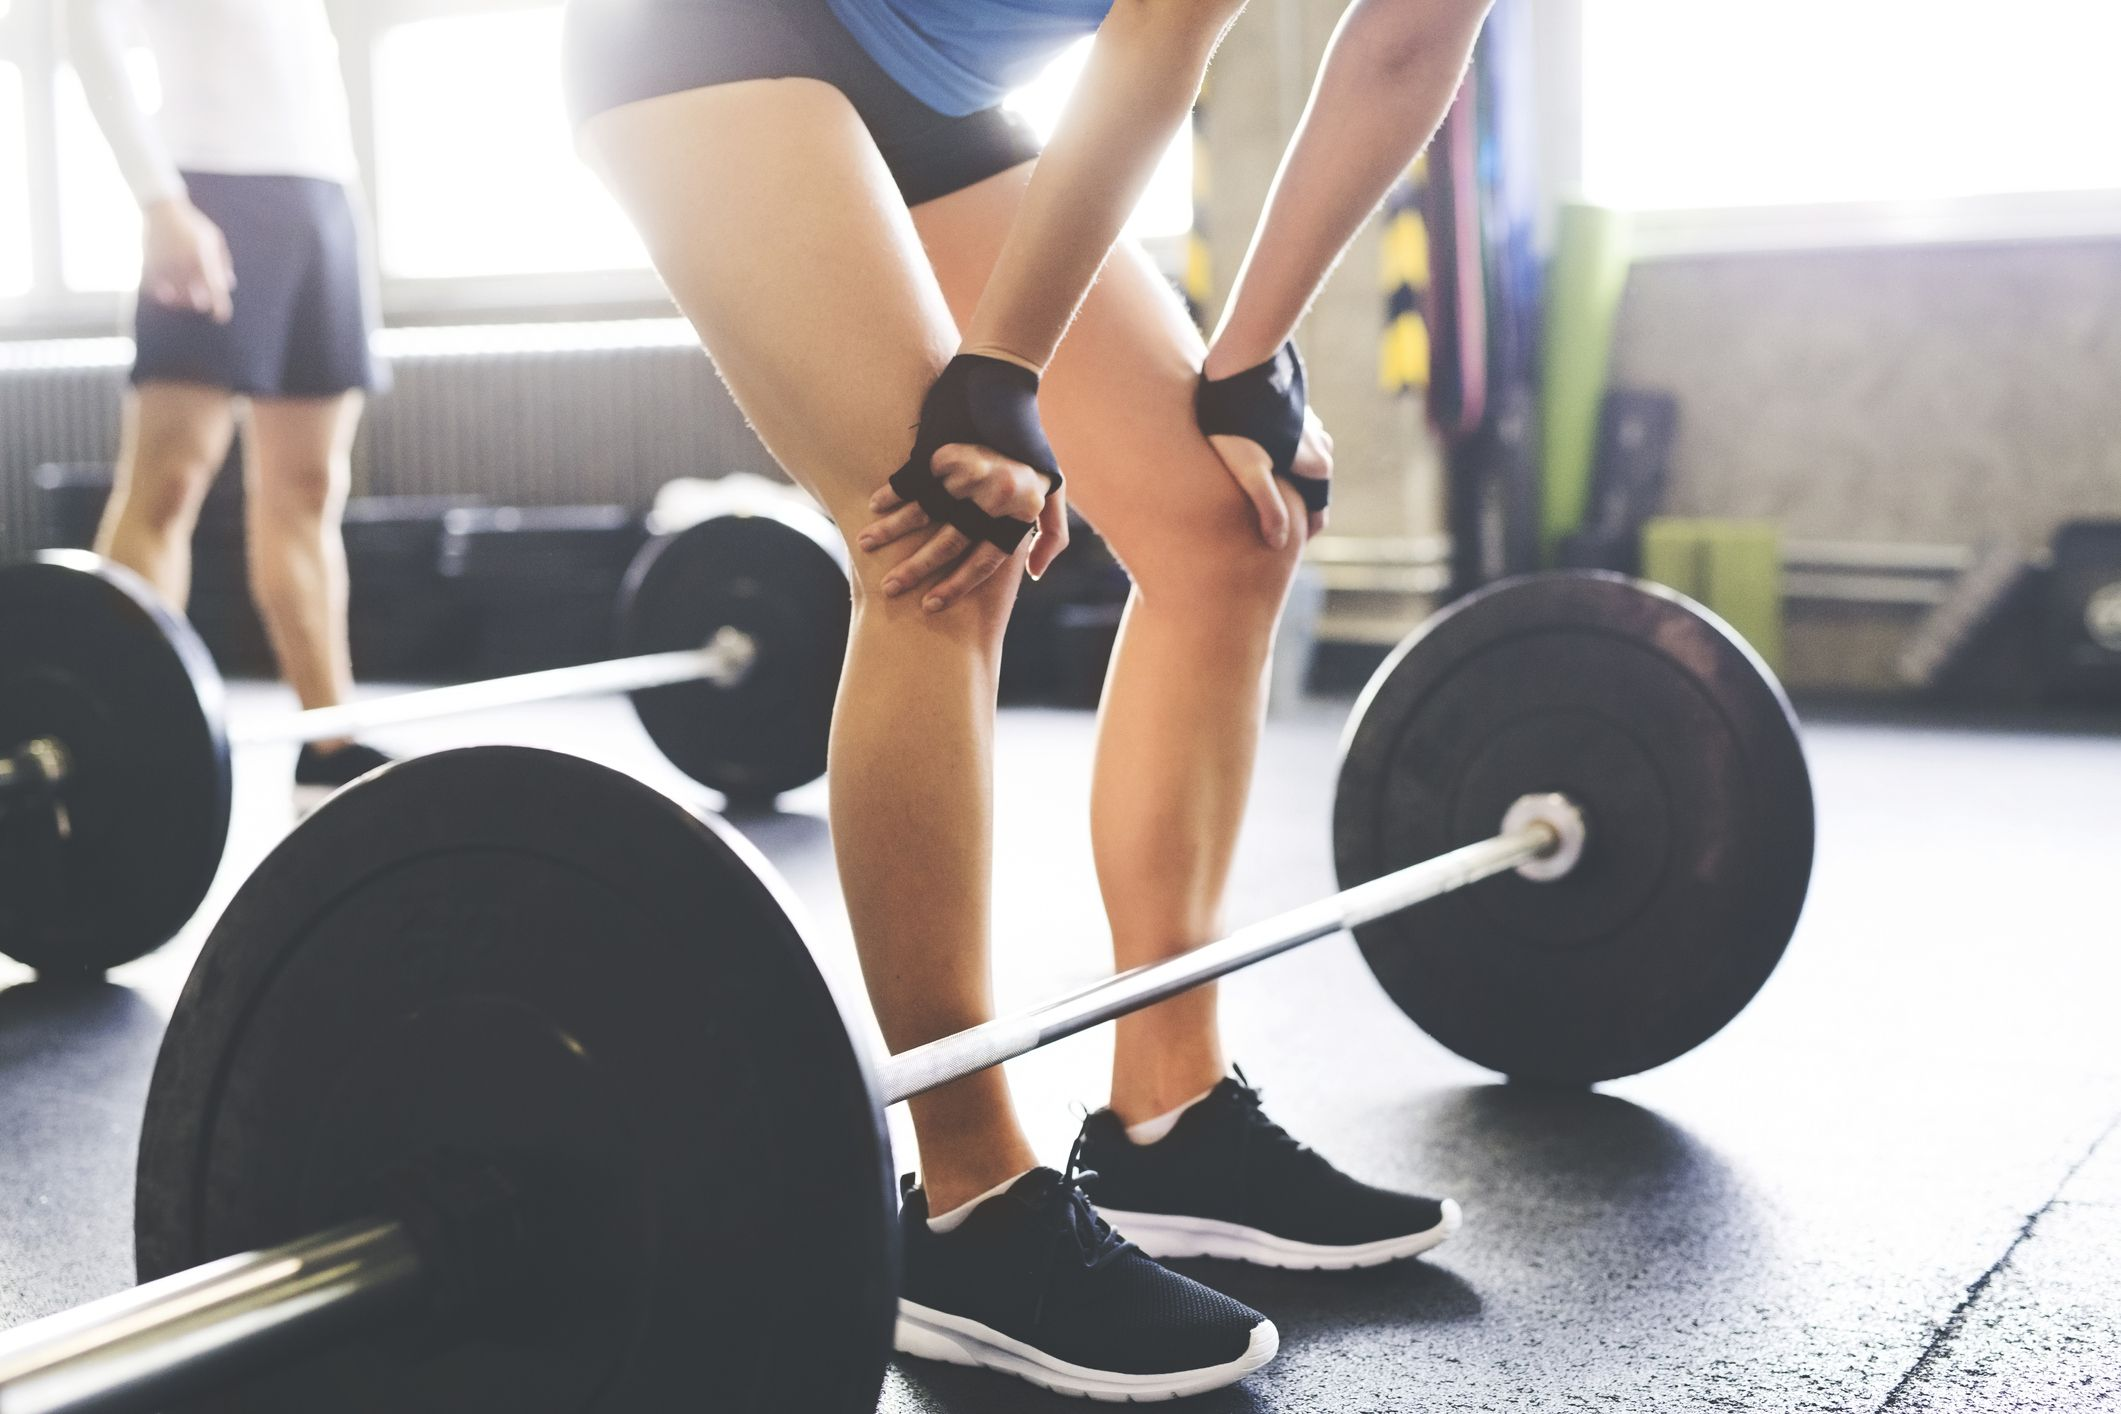 11 Best CrossFit Shoes to Buy in 2019/2020, According to Trainers and Reviewers